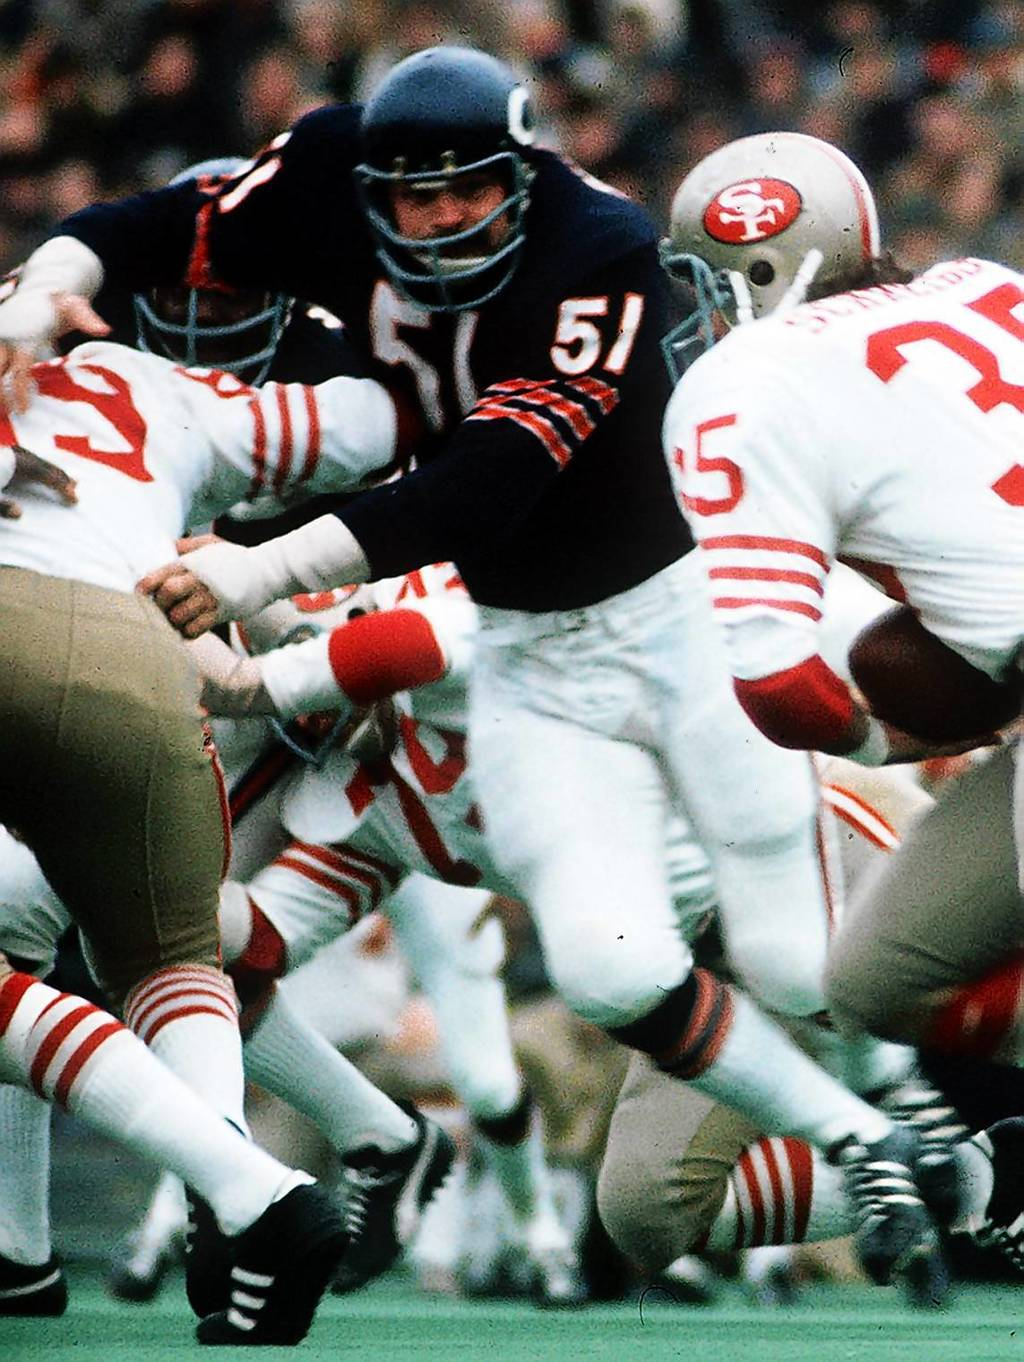 Dick Butkus rushes through the line of scrimmage against the 49ers during a game on Nov. 19, 1972.